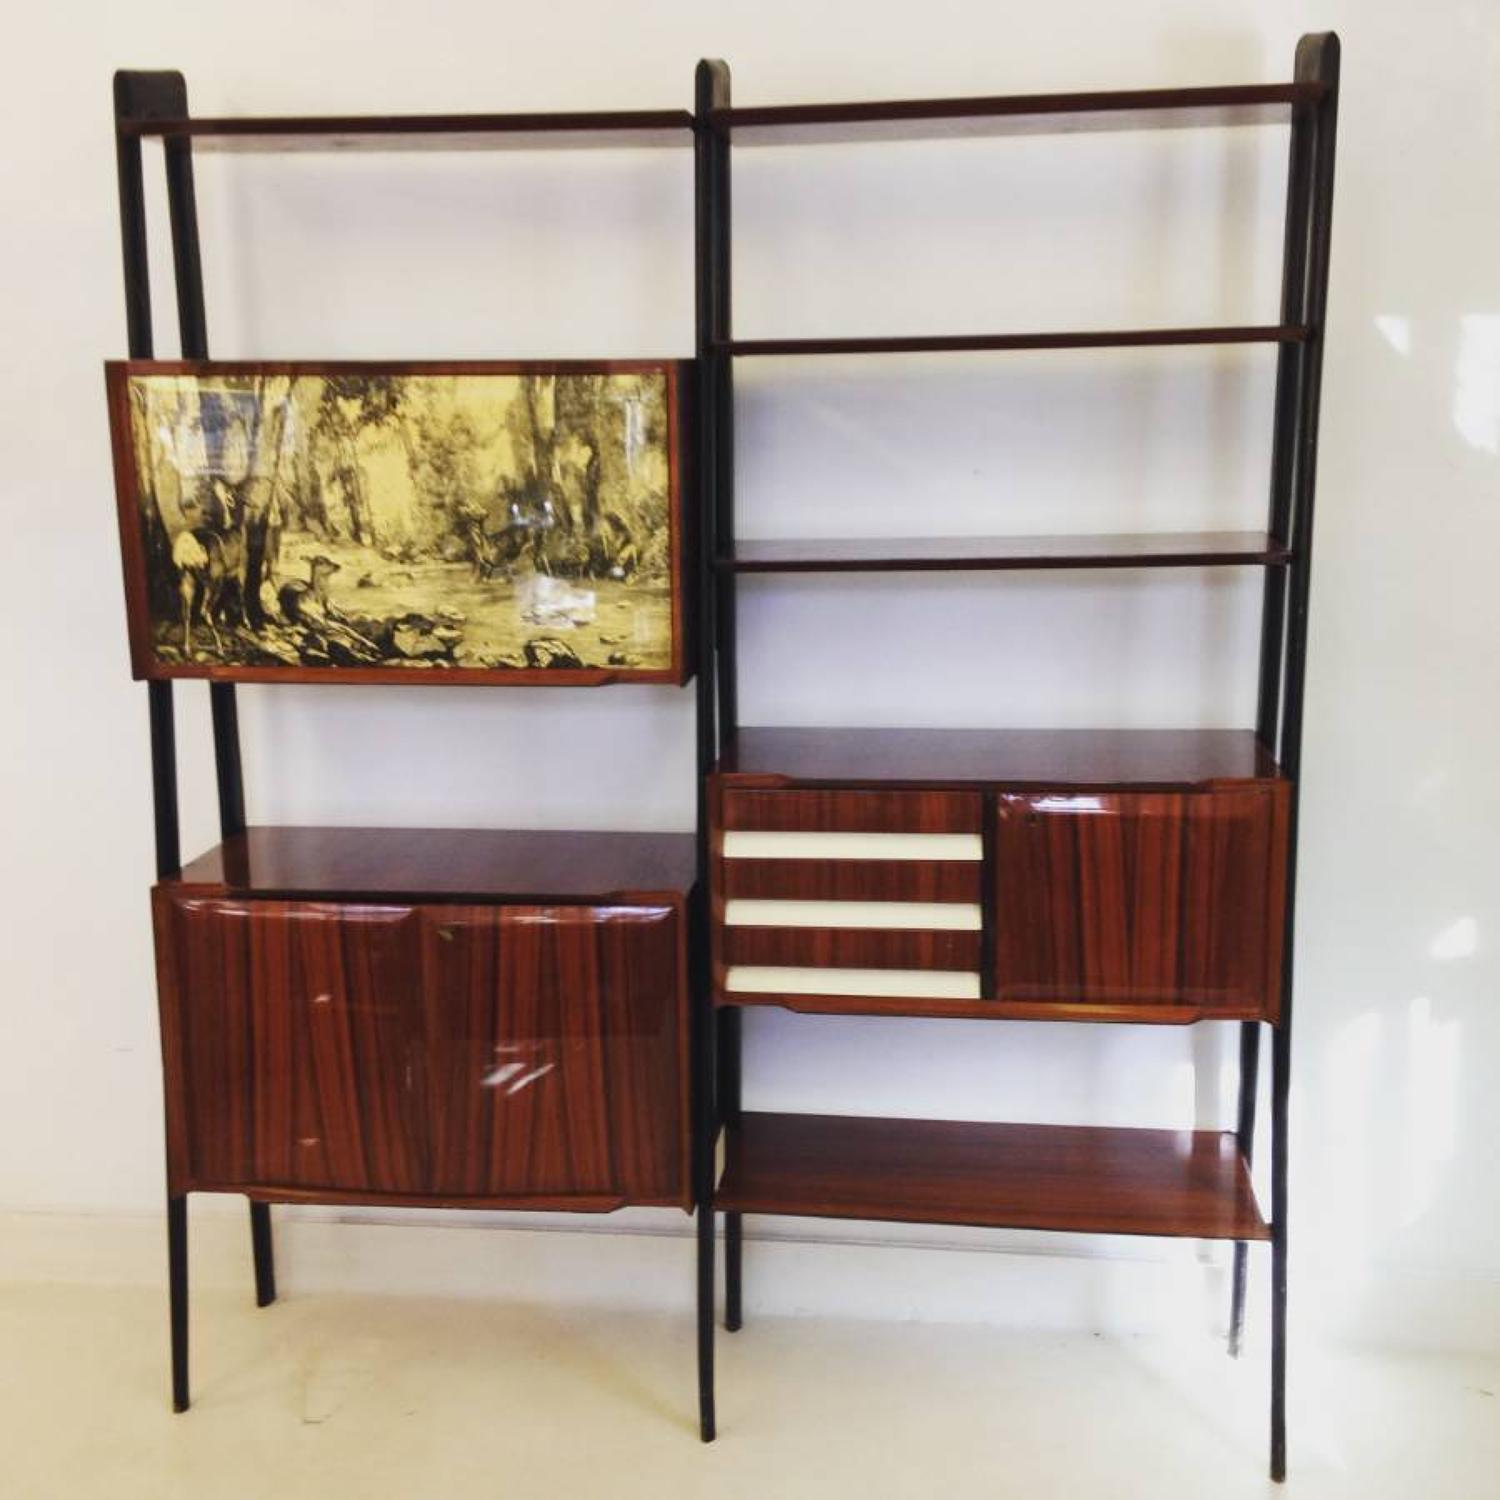 Rosewood bookcase and wall unit